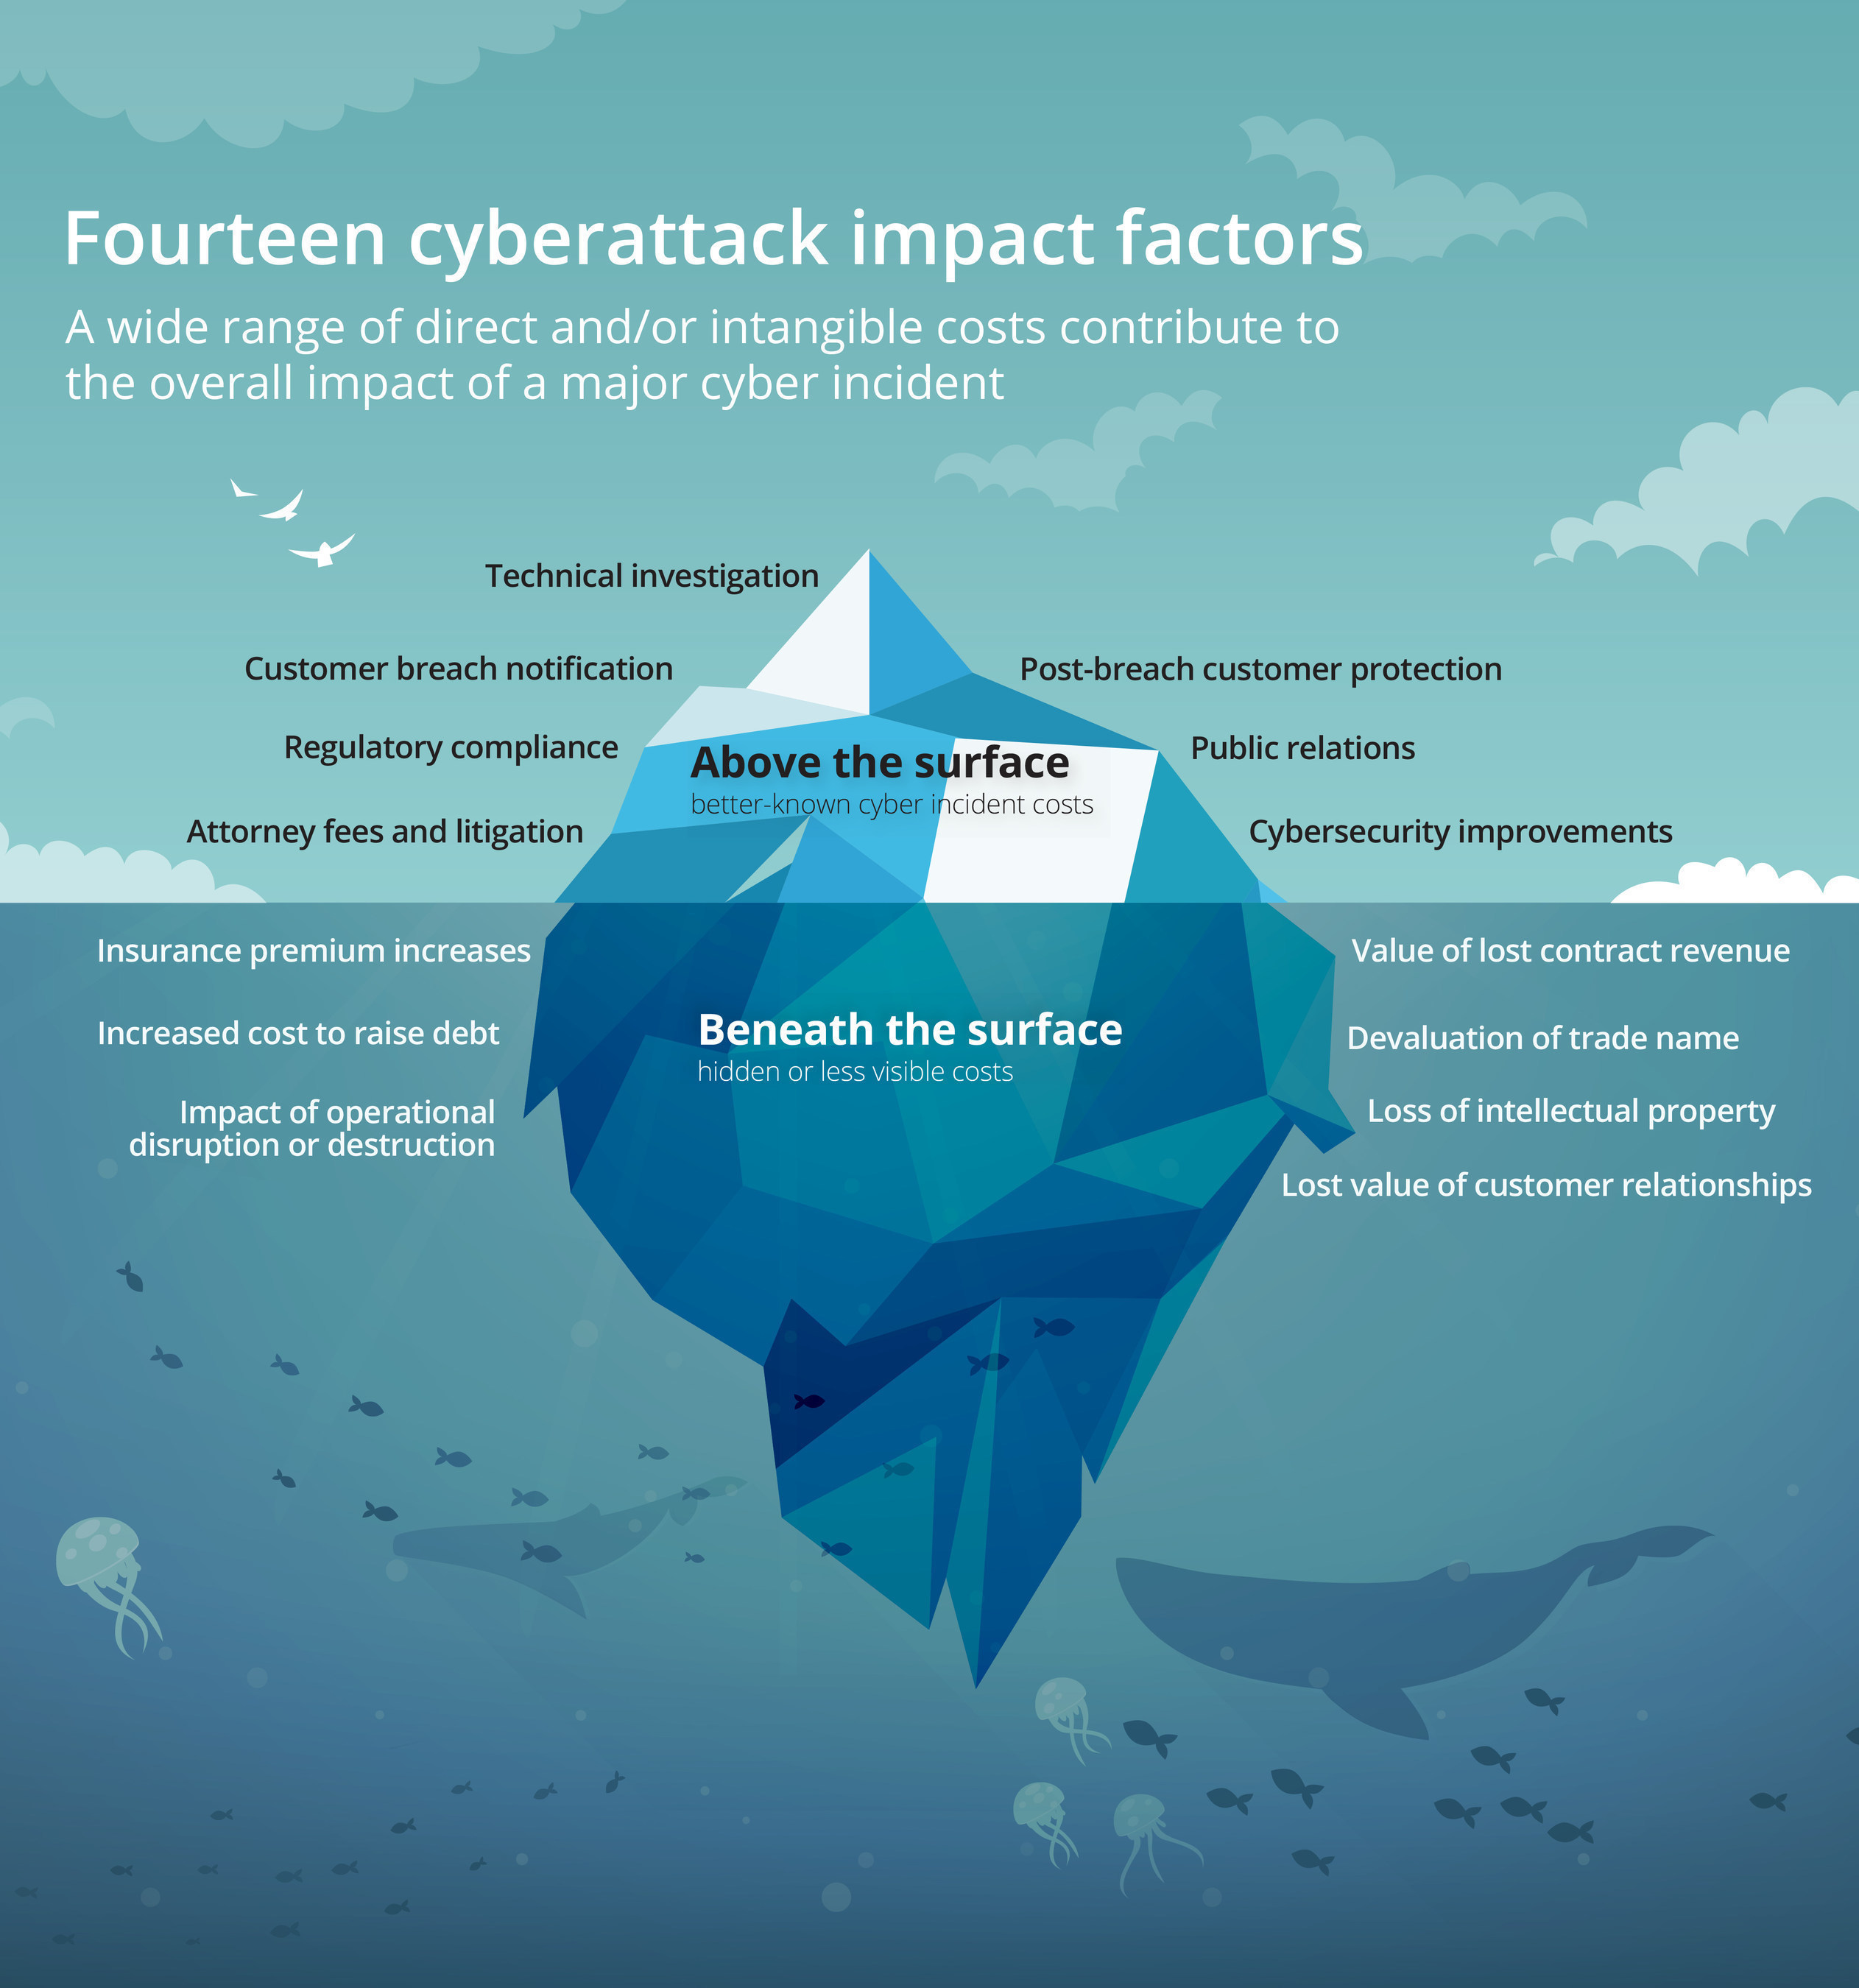 Deloitte Identifies 14 Business Impacts of a Cyberattack. The global leader for cyber risk services suggests that current market valuation of cyber incident impact is grossly underestimated. The report issued today quantifies both the direct and intangible damages caused by cyberattacks. Designed to reveal business recovery challenges that are normally hidden from public view, it will help organizations develop a more comprehensive view of the cyber risks they face. http://www.deloitte.com/us/cyberattack